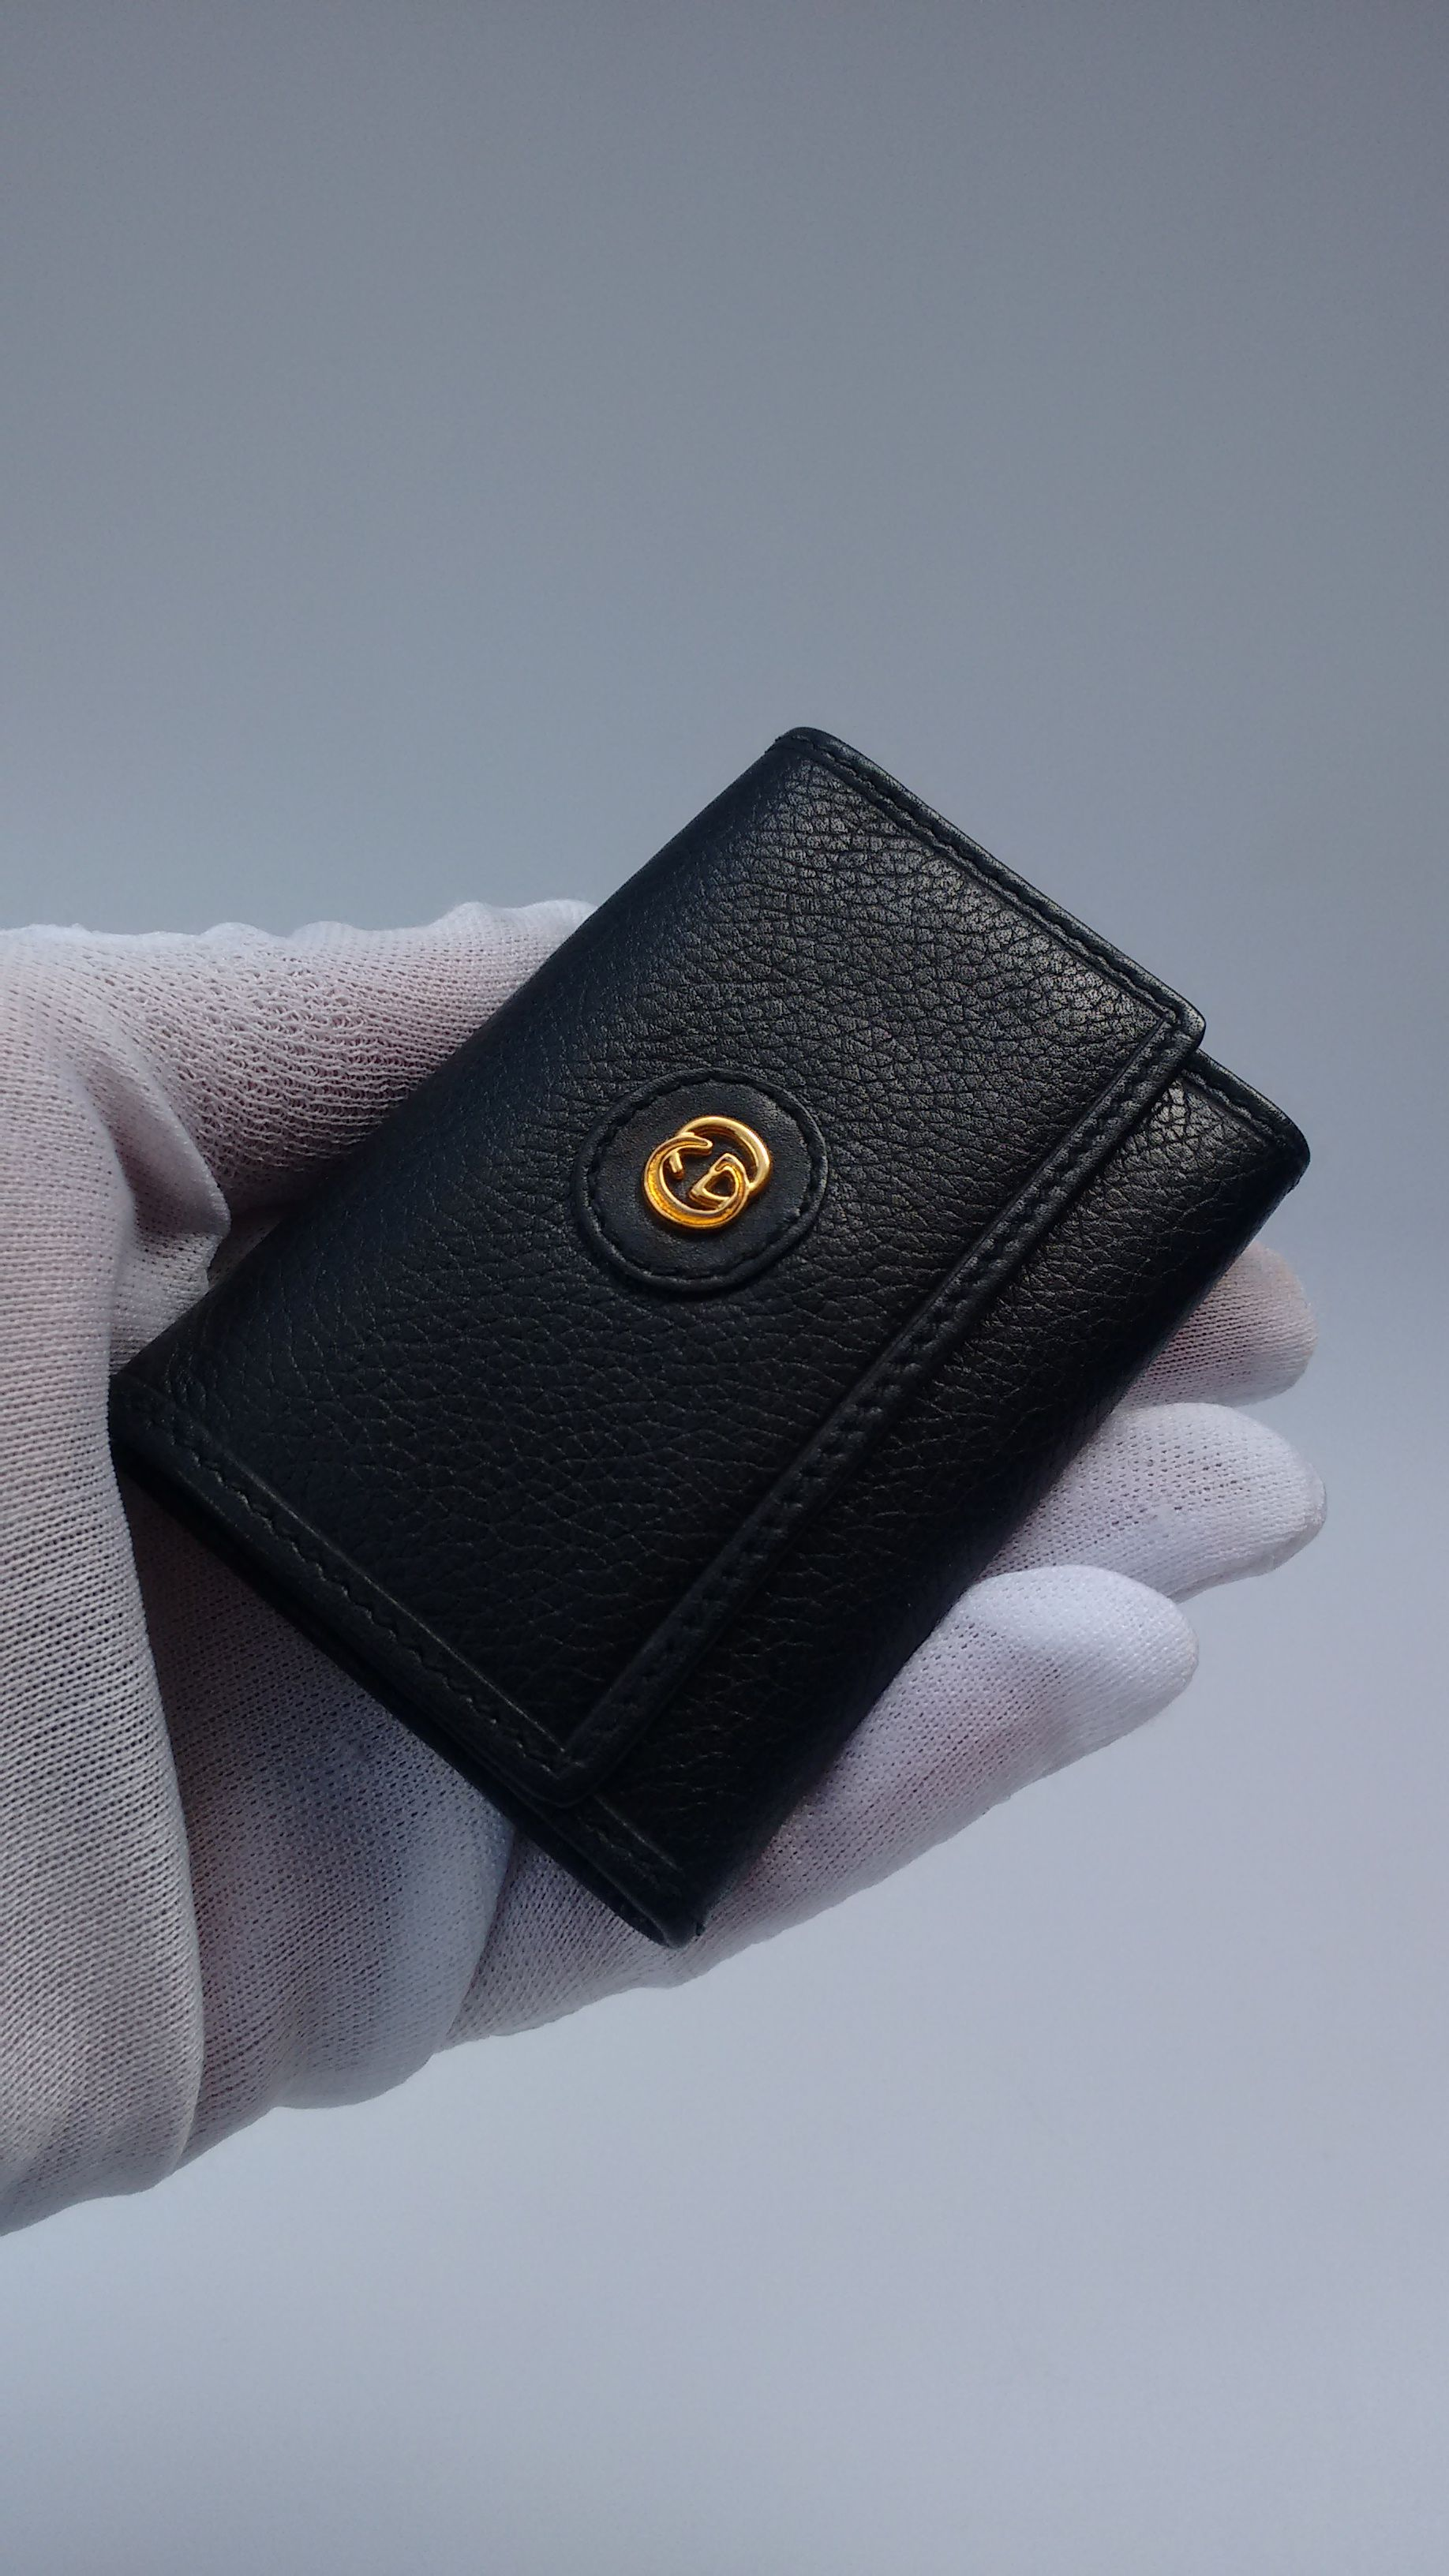 6bffd1ba53fe GUCCI Key Wallet. Gucci Vintage Black Leather Key Case / Wallet. Italian  designer purse.